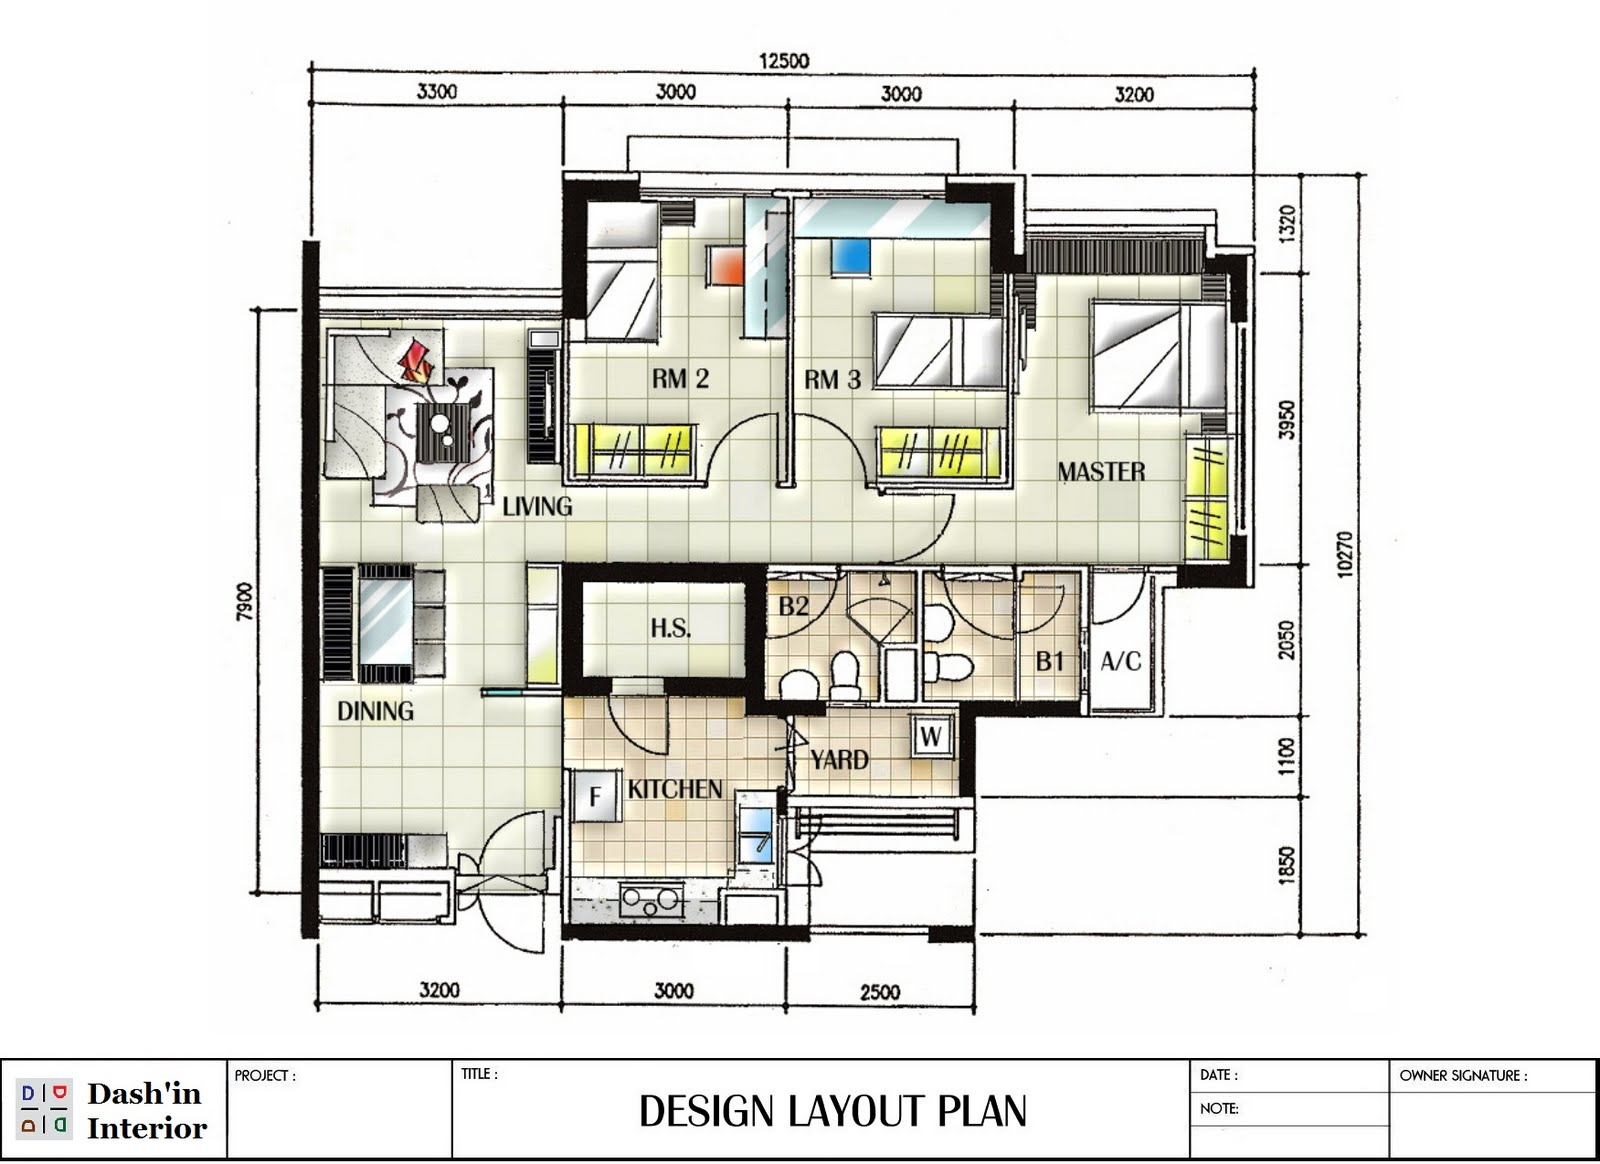 Hand drawn designs floor plan layout